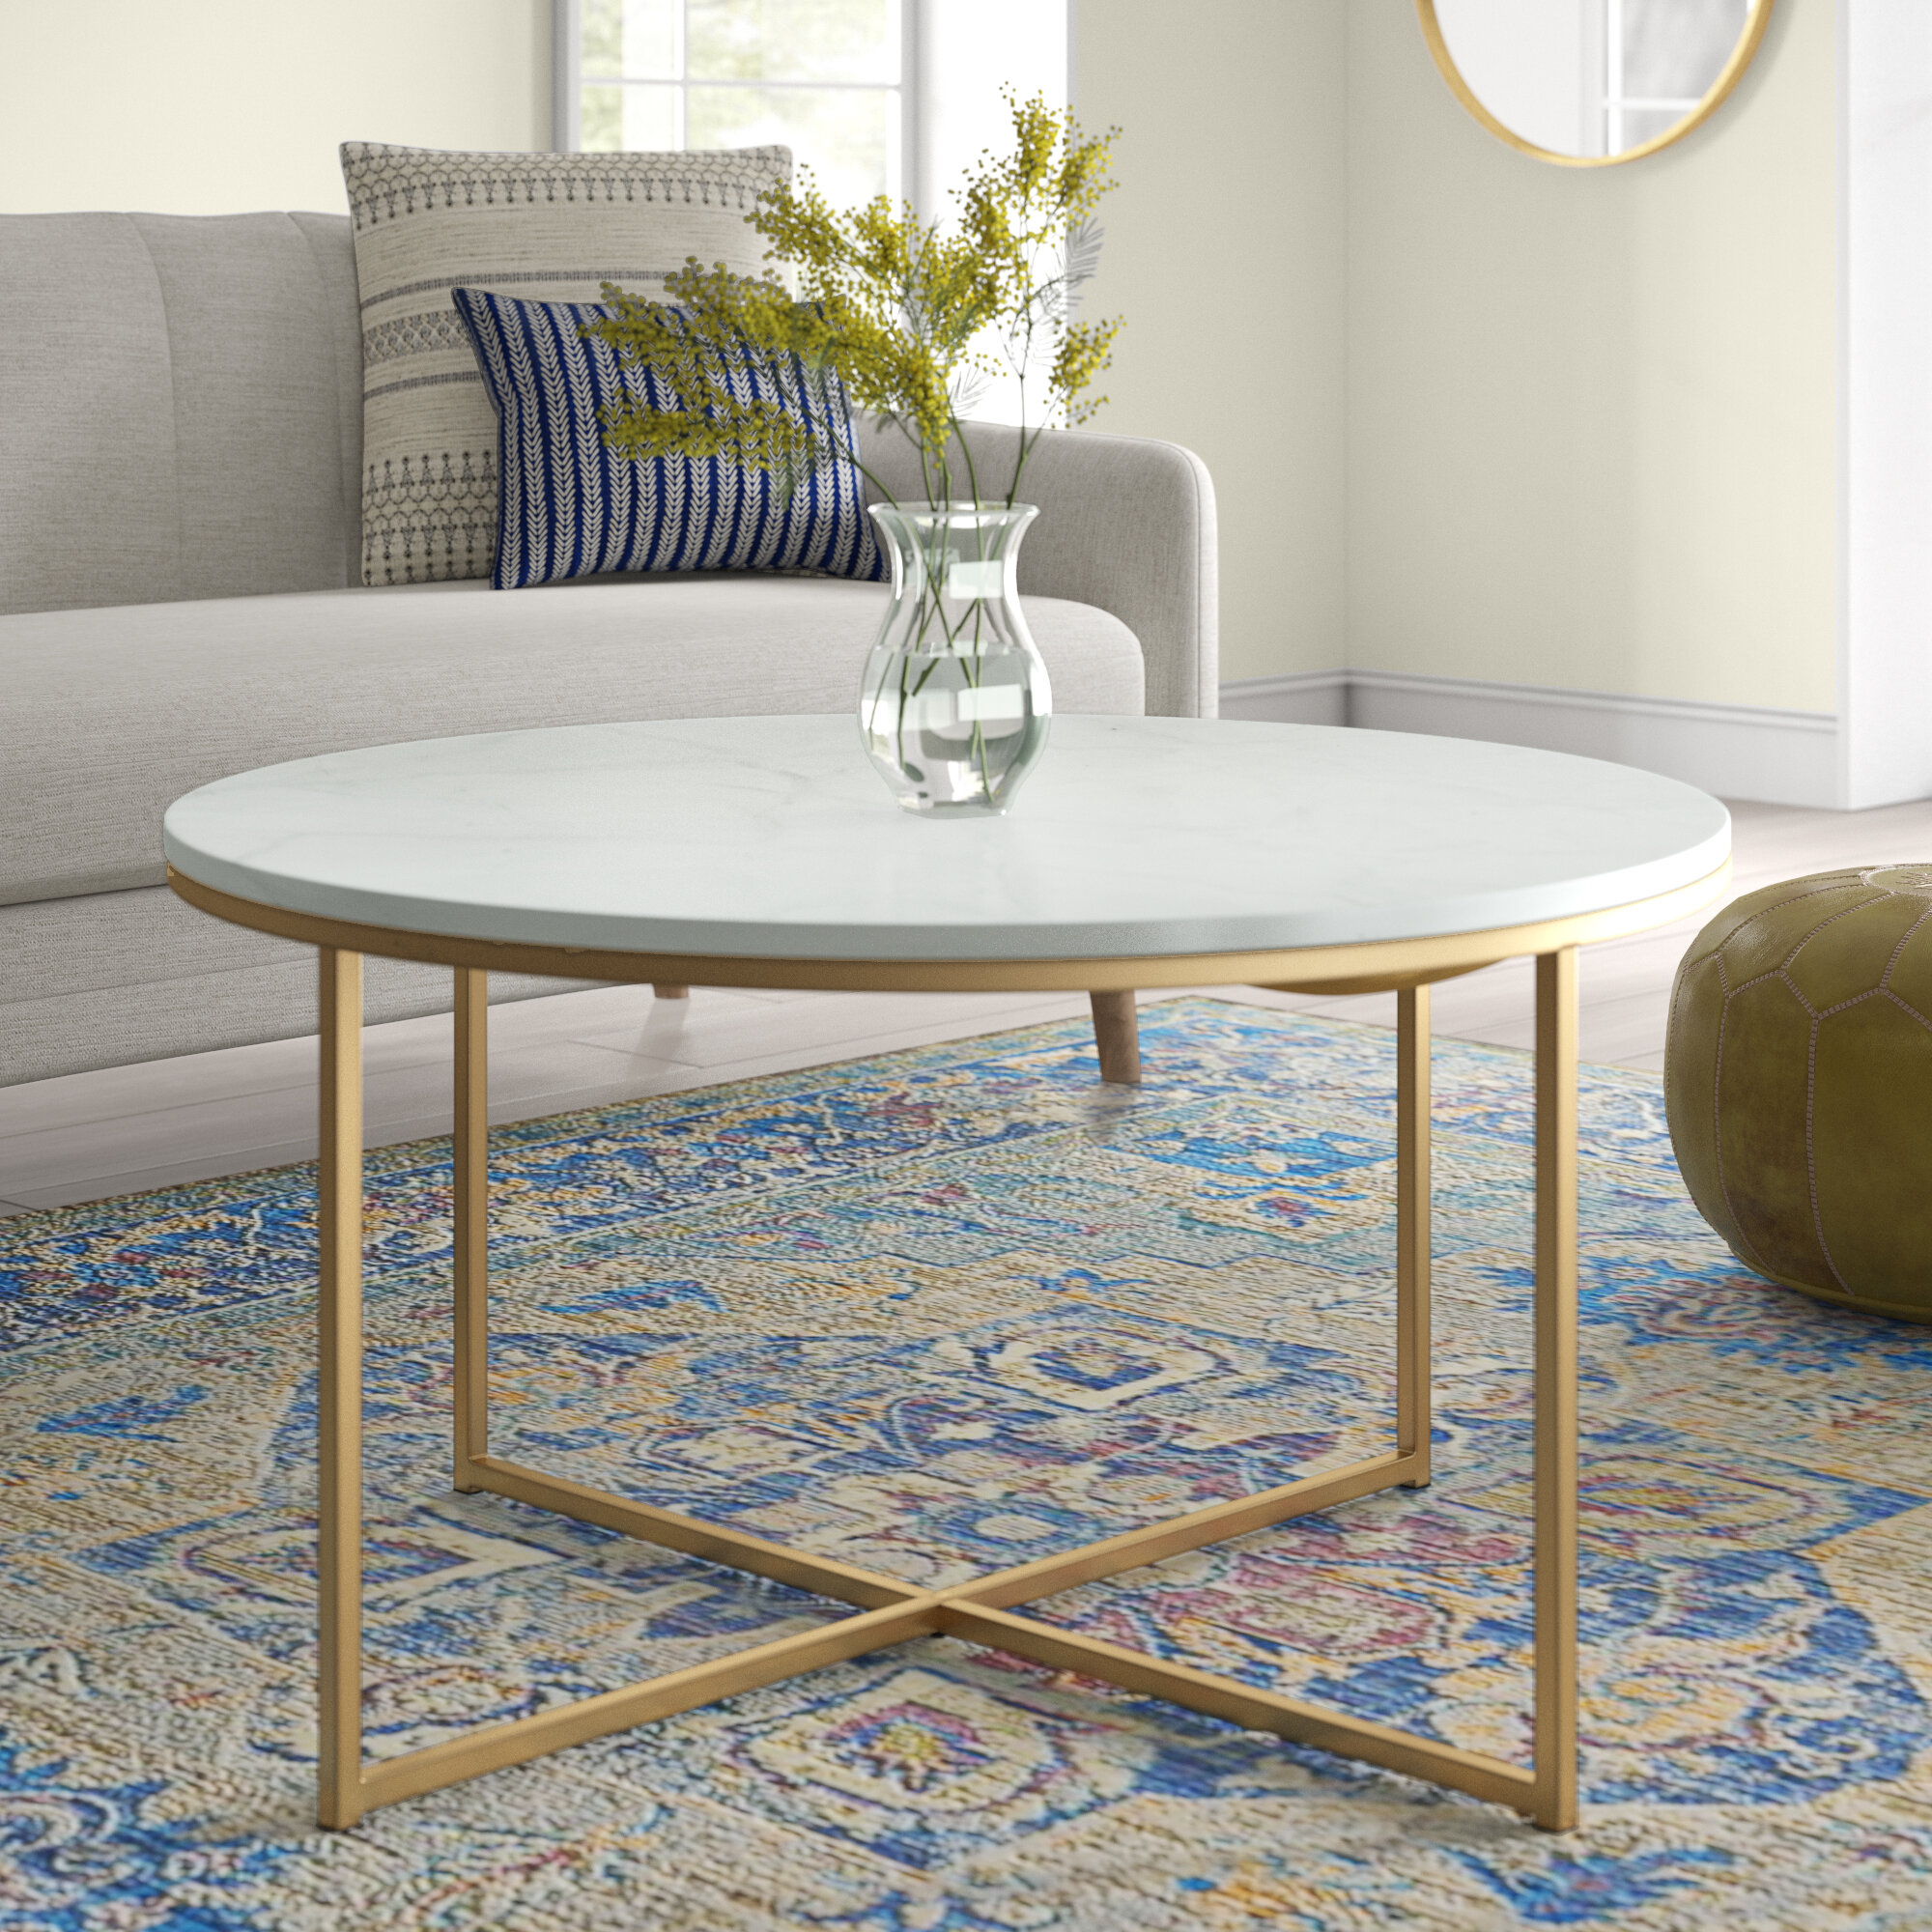 Rose Gold Marble Coffee Table | Wayfair For Robblee 4 Light Geometric Pendants (Gallery 19 of 30)